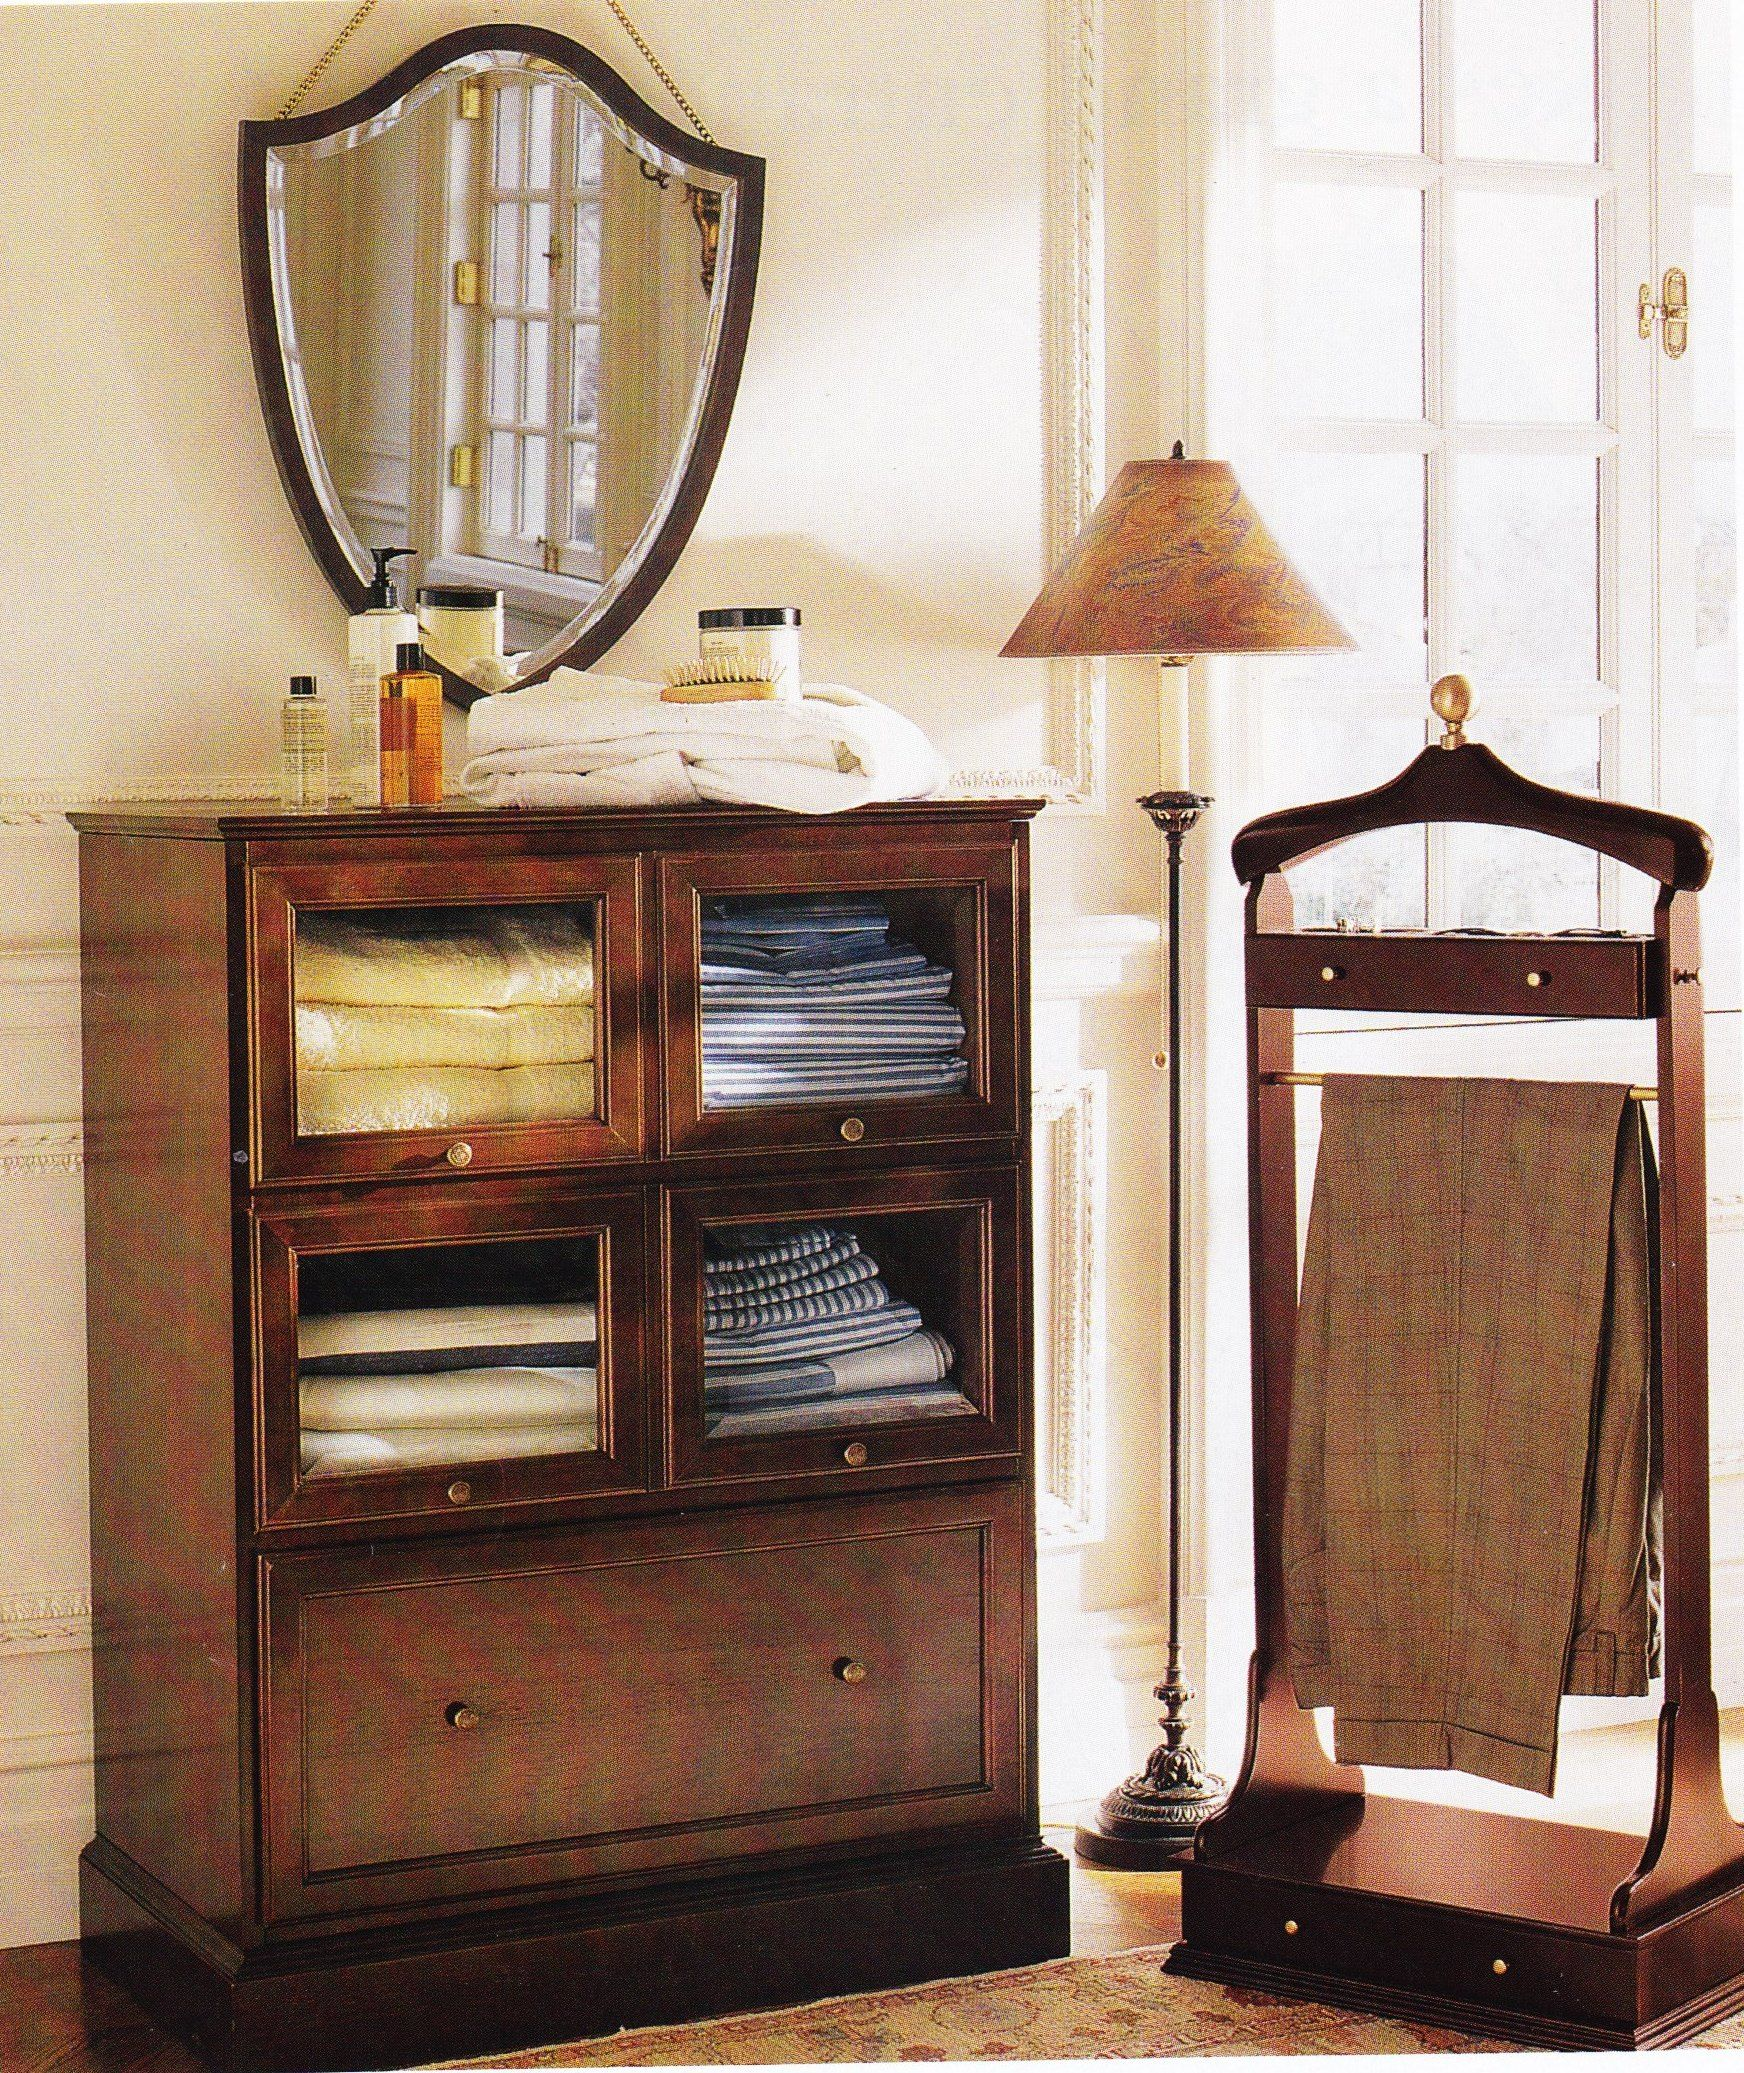 Haberdasheru0027s Dressing Cabinet And Hepplewhite Shield Mirror From The Old  Bombay Company (1997)